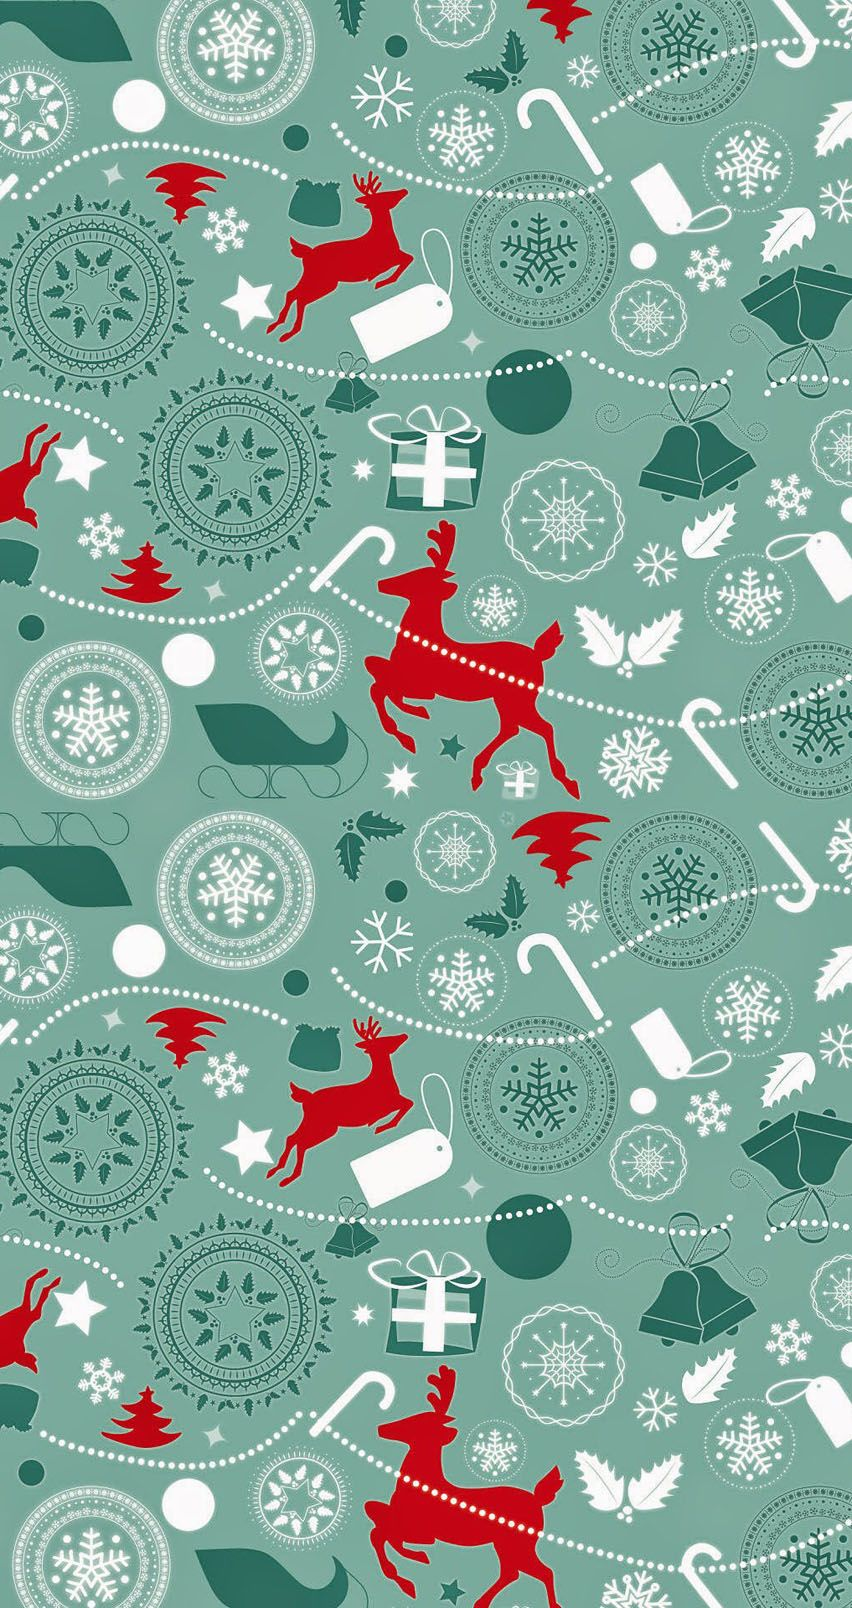 Reindeer pattern. Tap image for more iPhone 6 Christmas